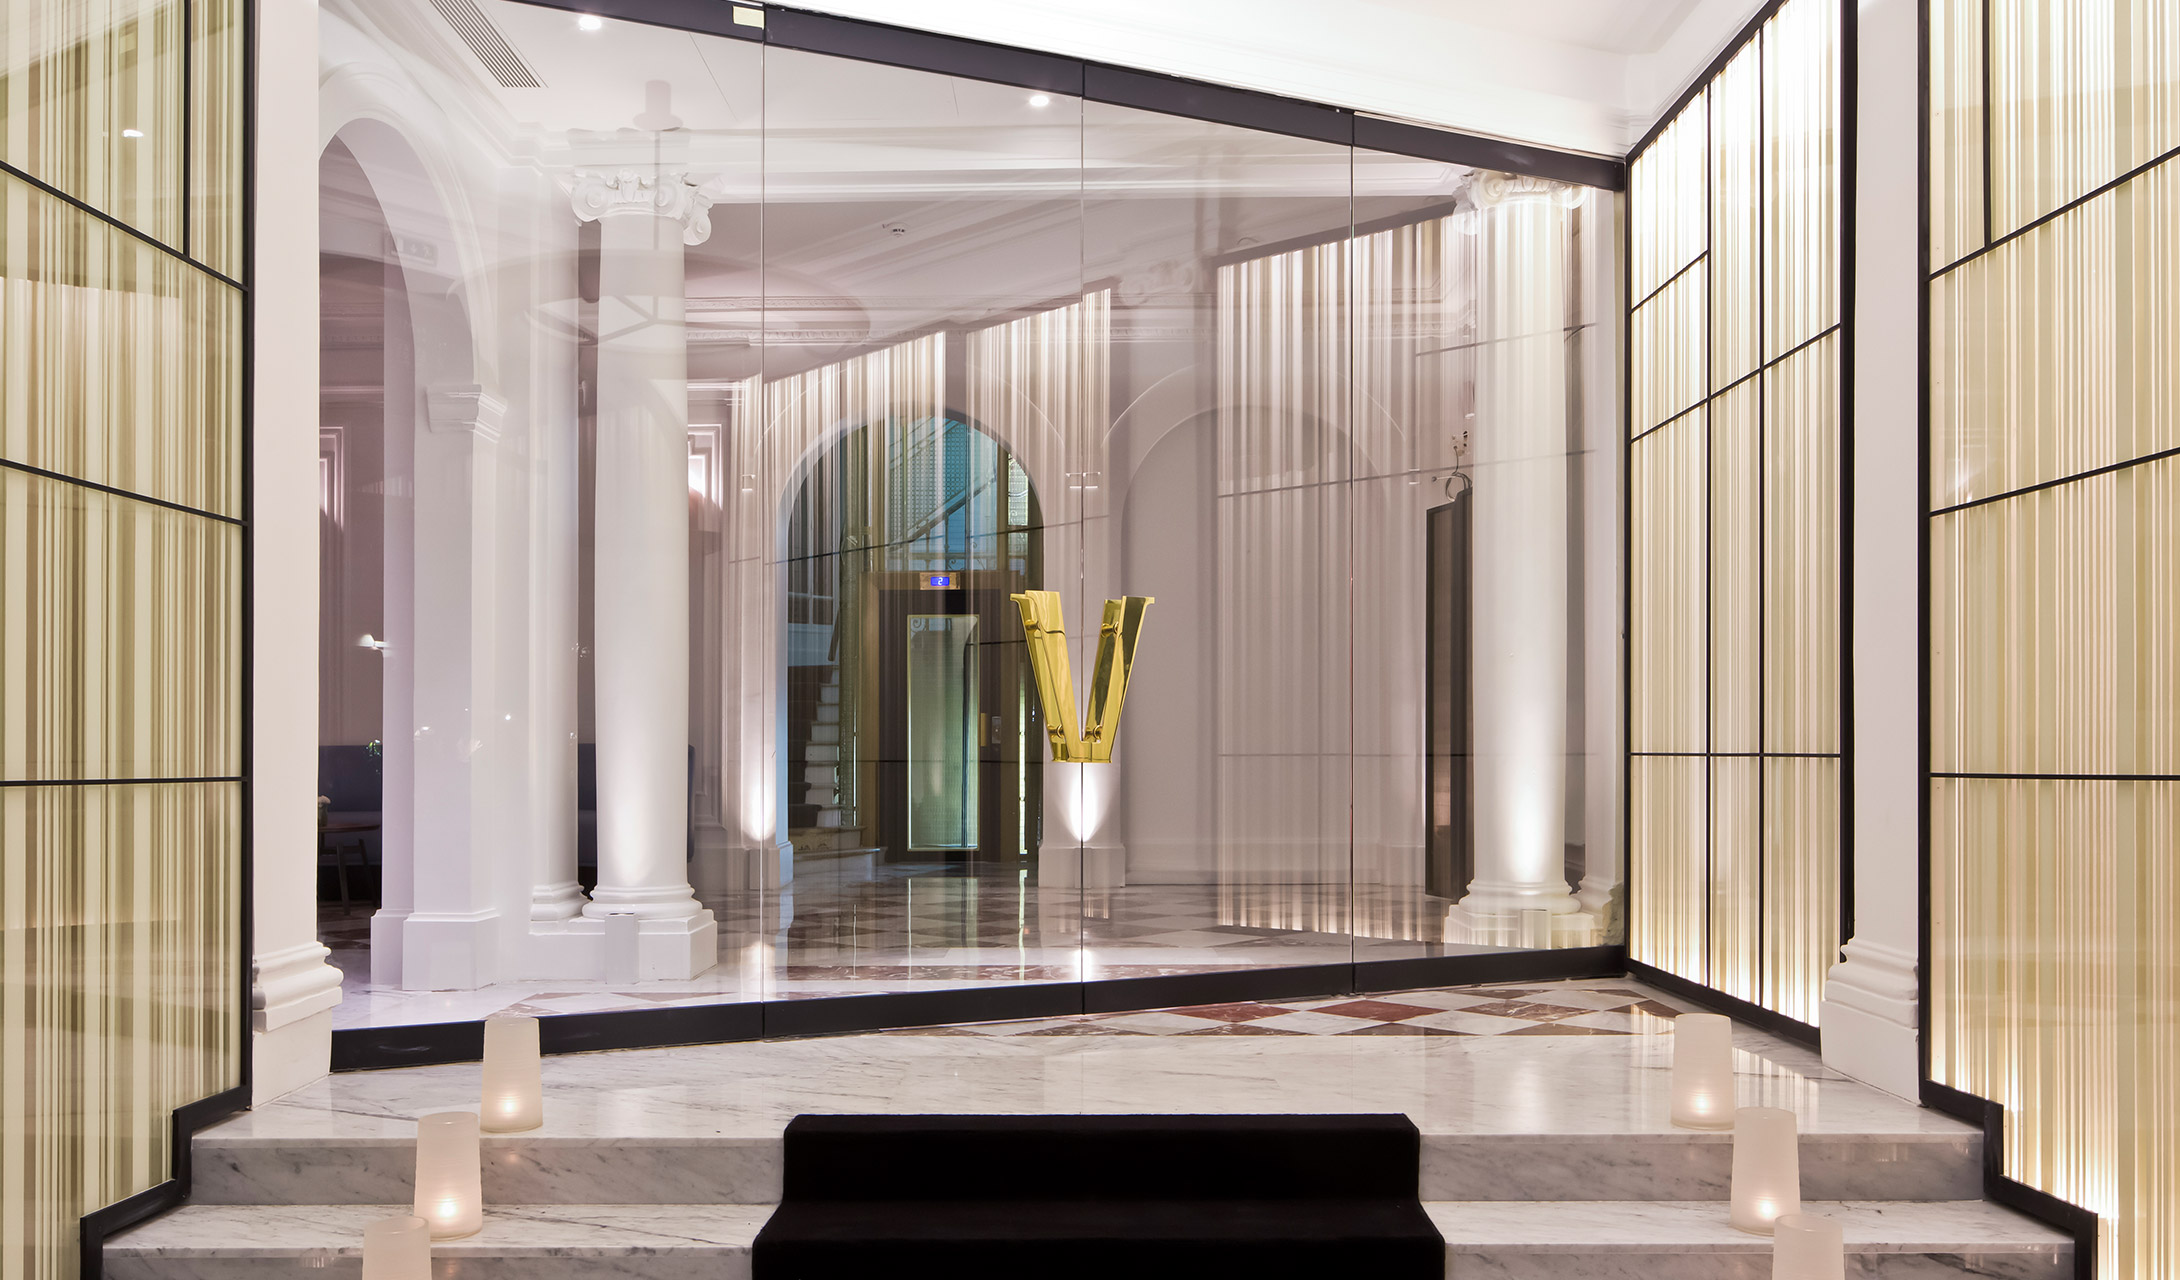 Hotel vernet champs elys es paris france design hotels for Hotel design france